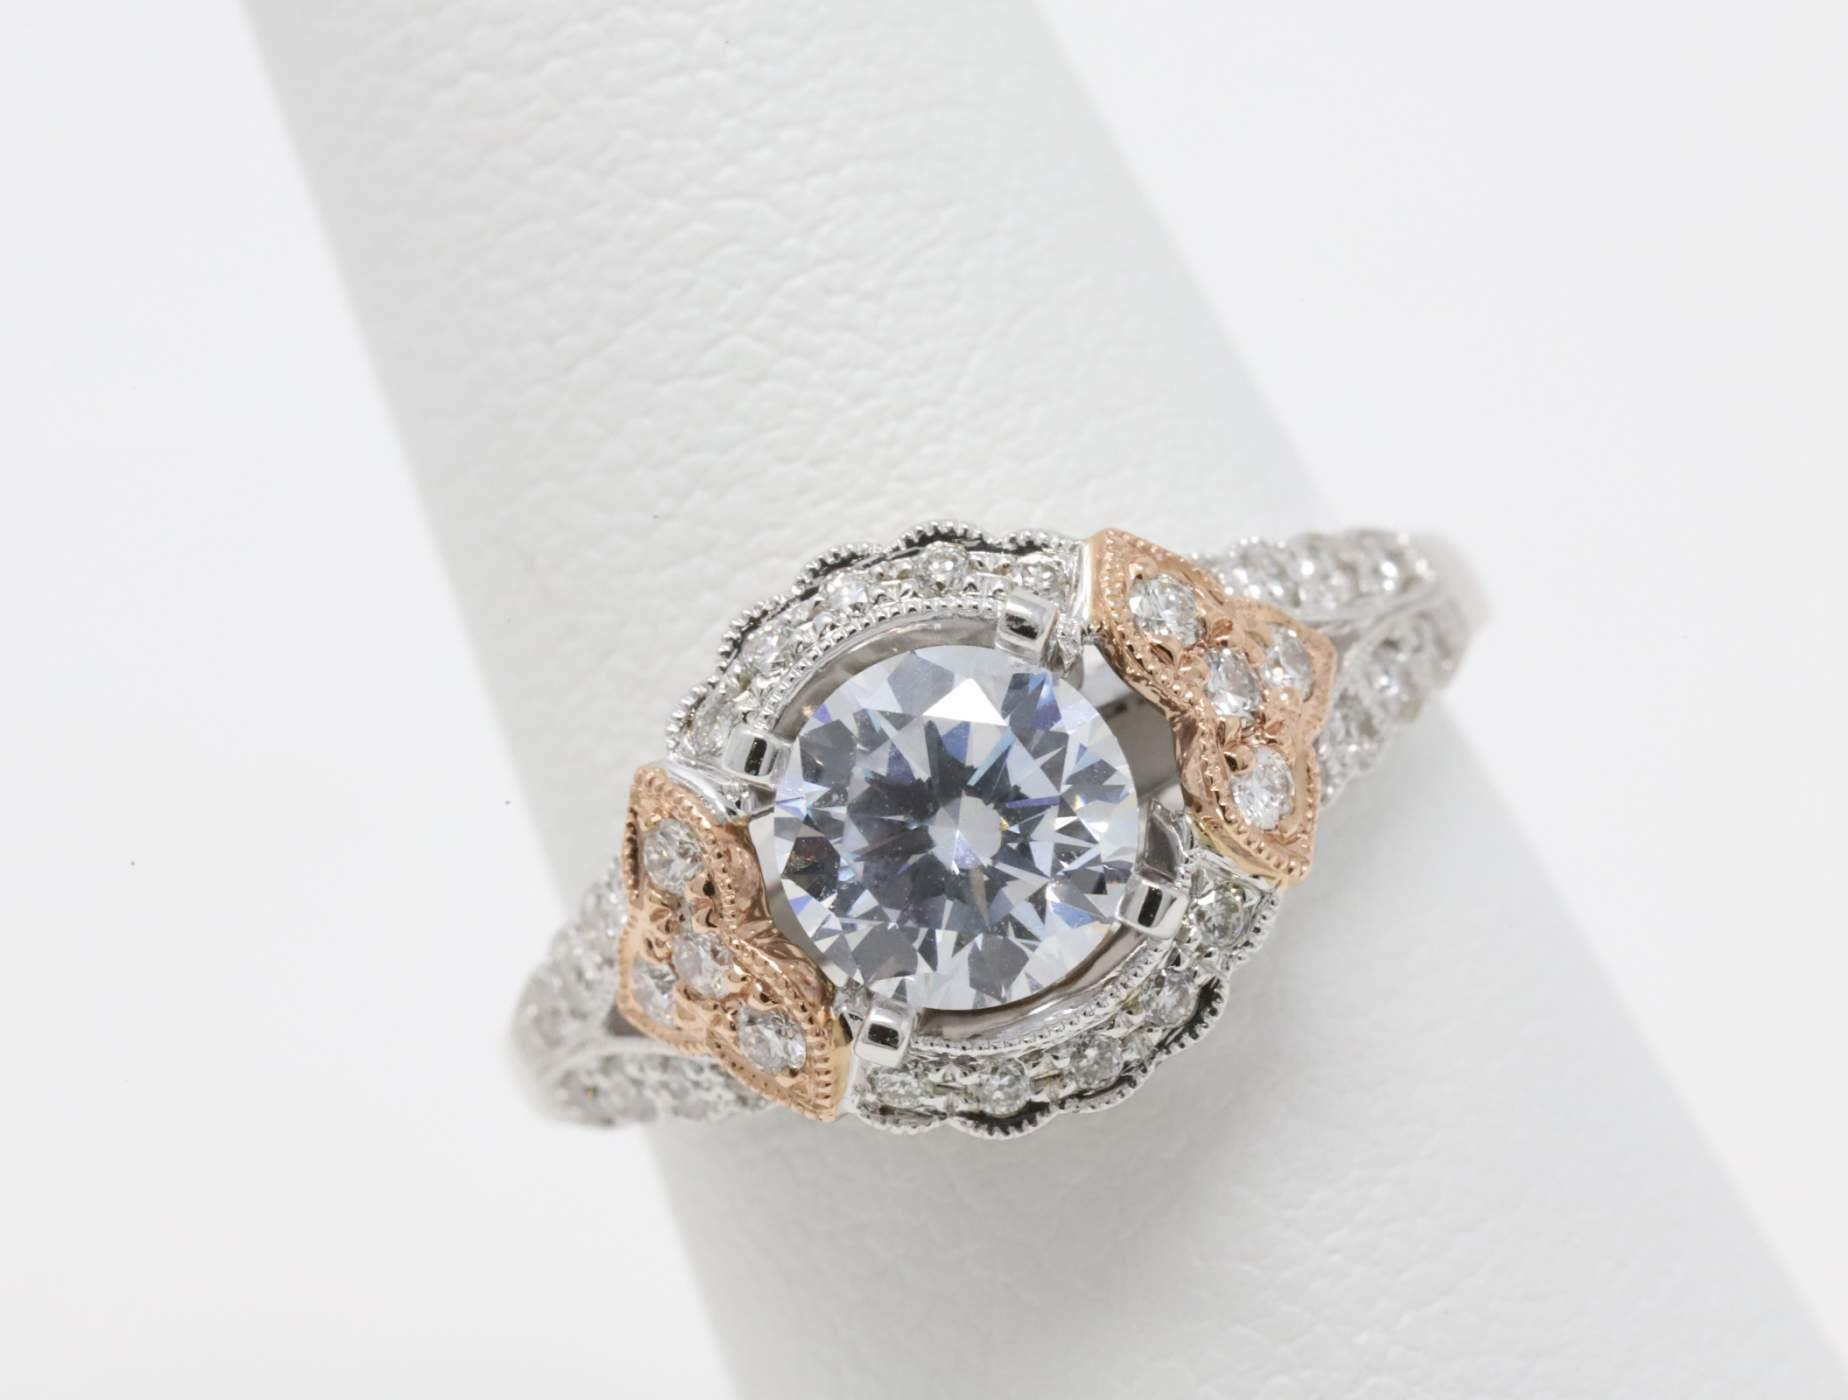 14k White And Rose Gold Lady's Diamond Mounting